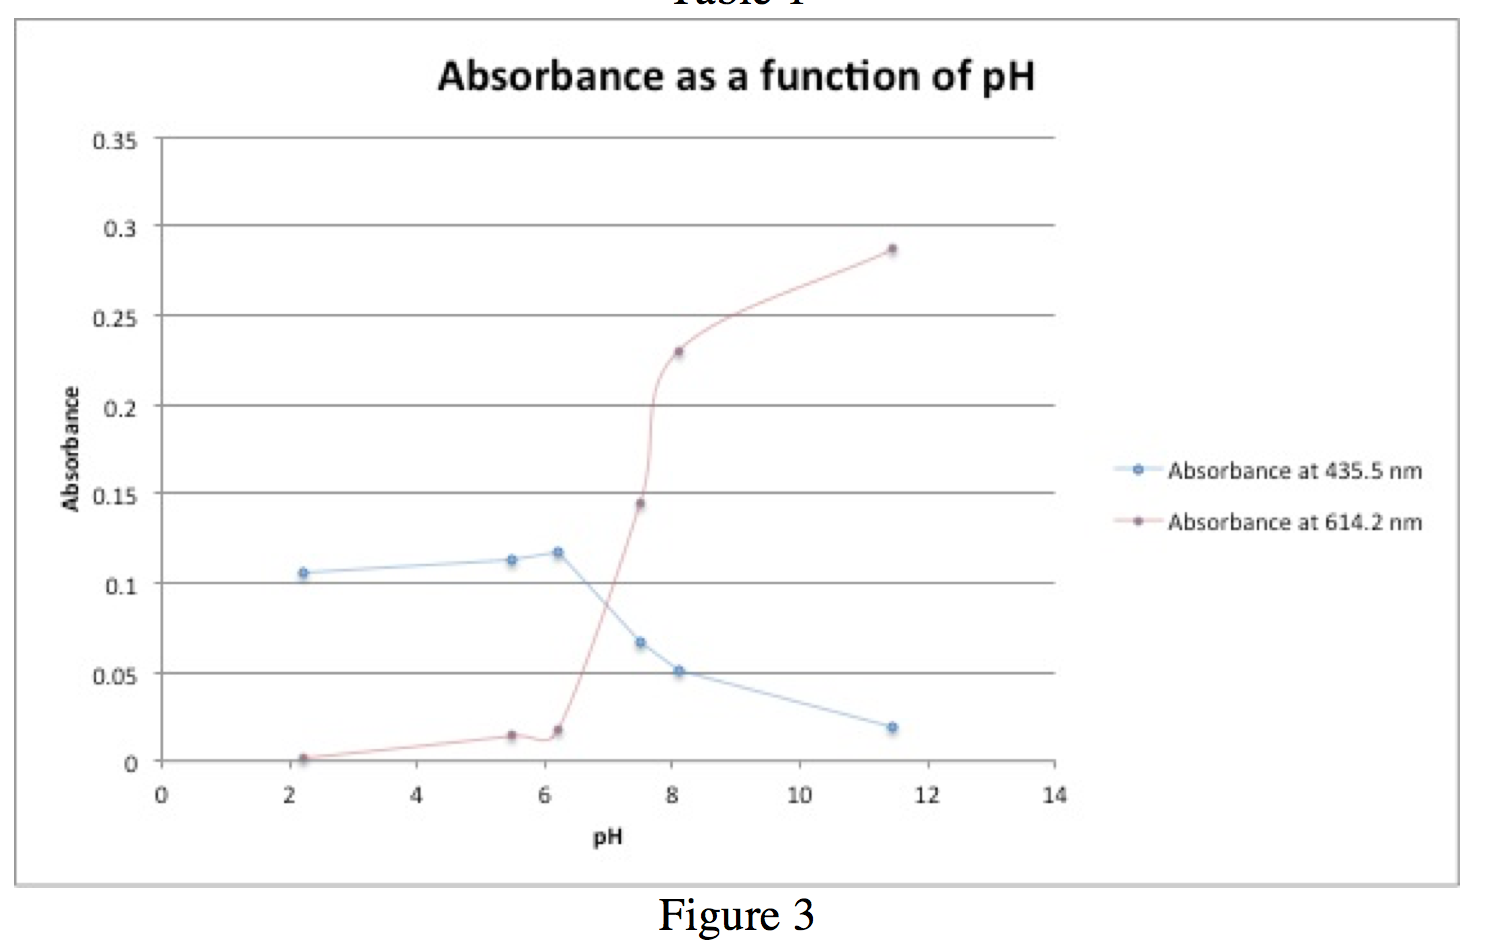 Figure 4 - Absorbance as a function of pH